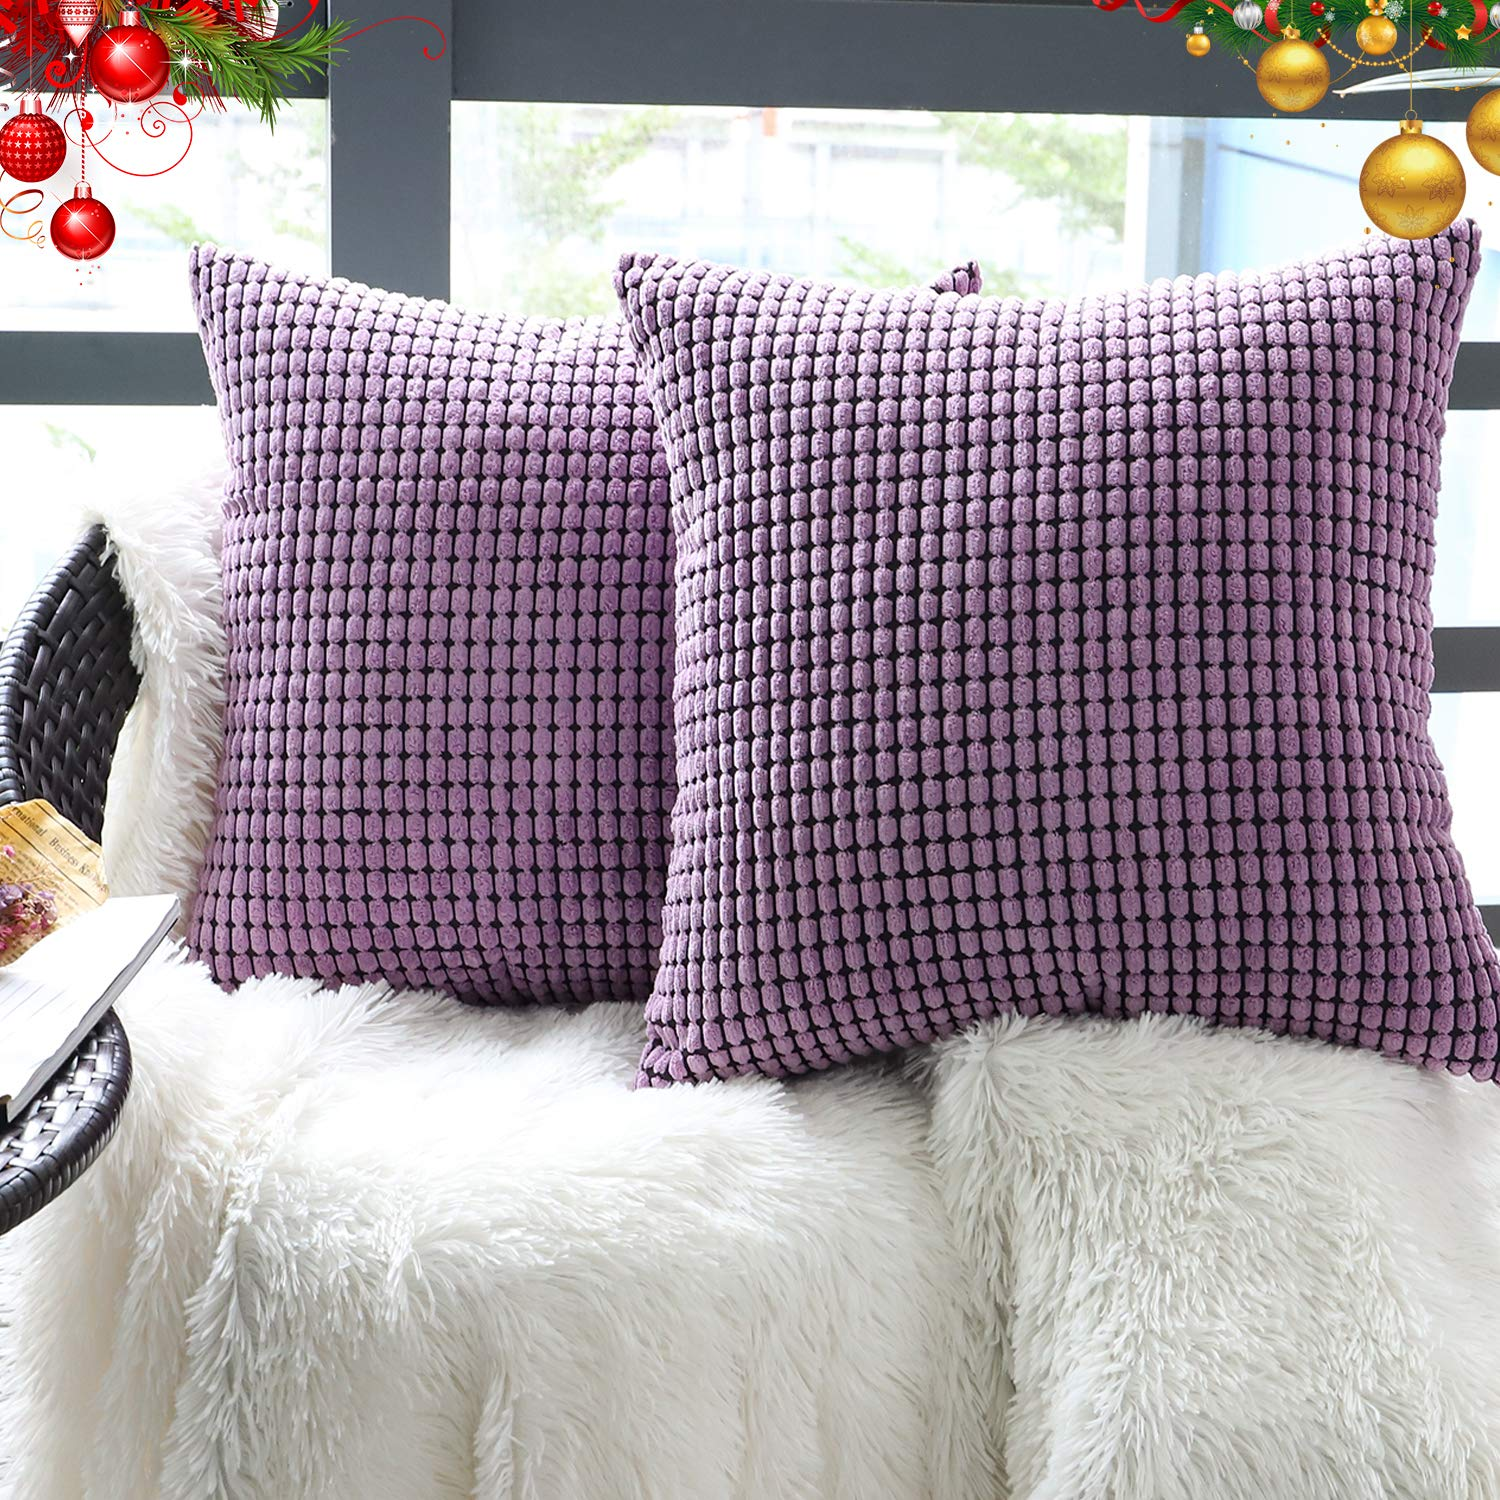 """Set of 2,Soft Accent Throw Pillow Cover 22"""" x 22"""" (No Insert),Decorative Cozy Corduroy Square Pattern Zipper Pillow Case Cover,Velvet Large Cushion Cover for Couch/Sofa/Bedroom,Lavender Purple"""